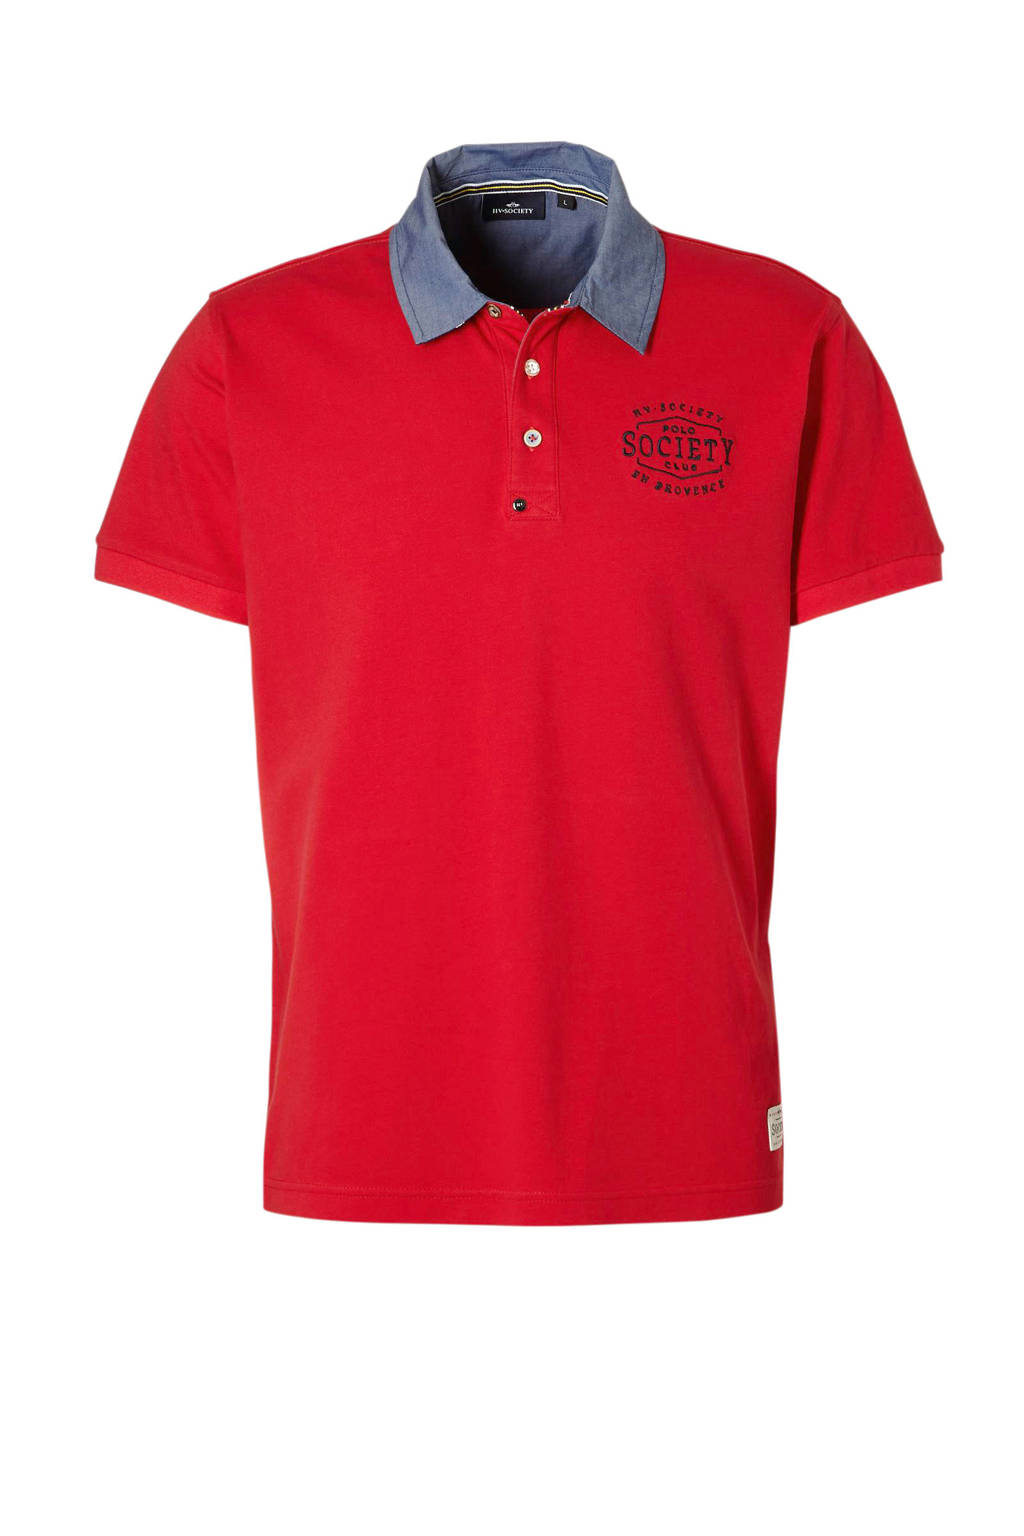 HV SOCIETY polo, Rood